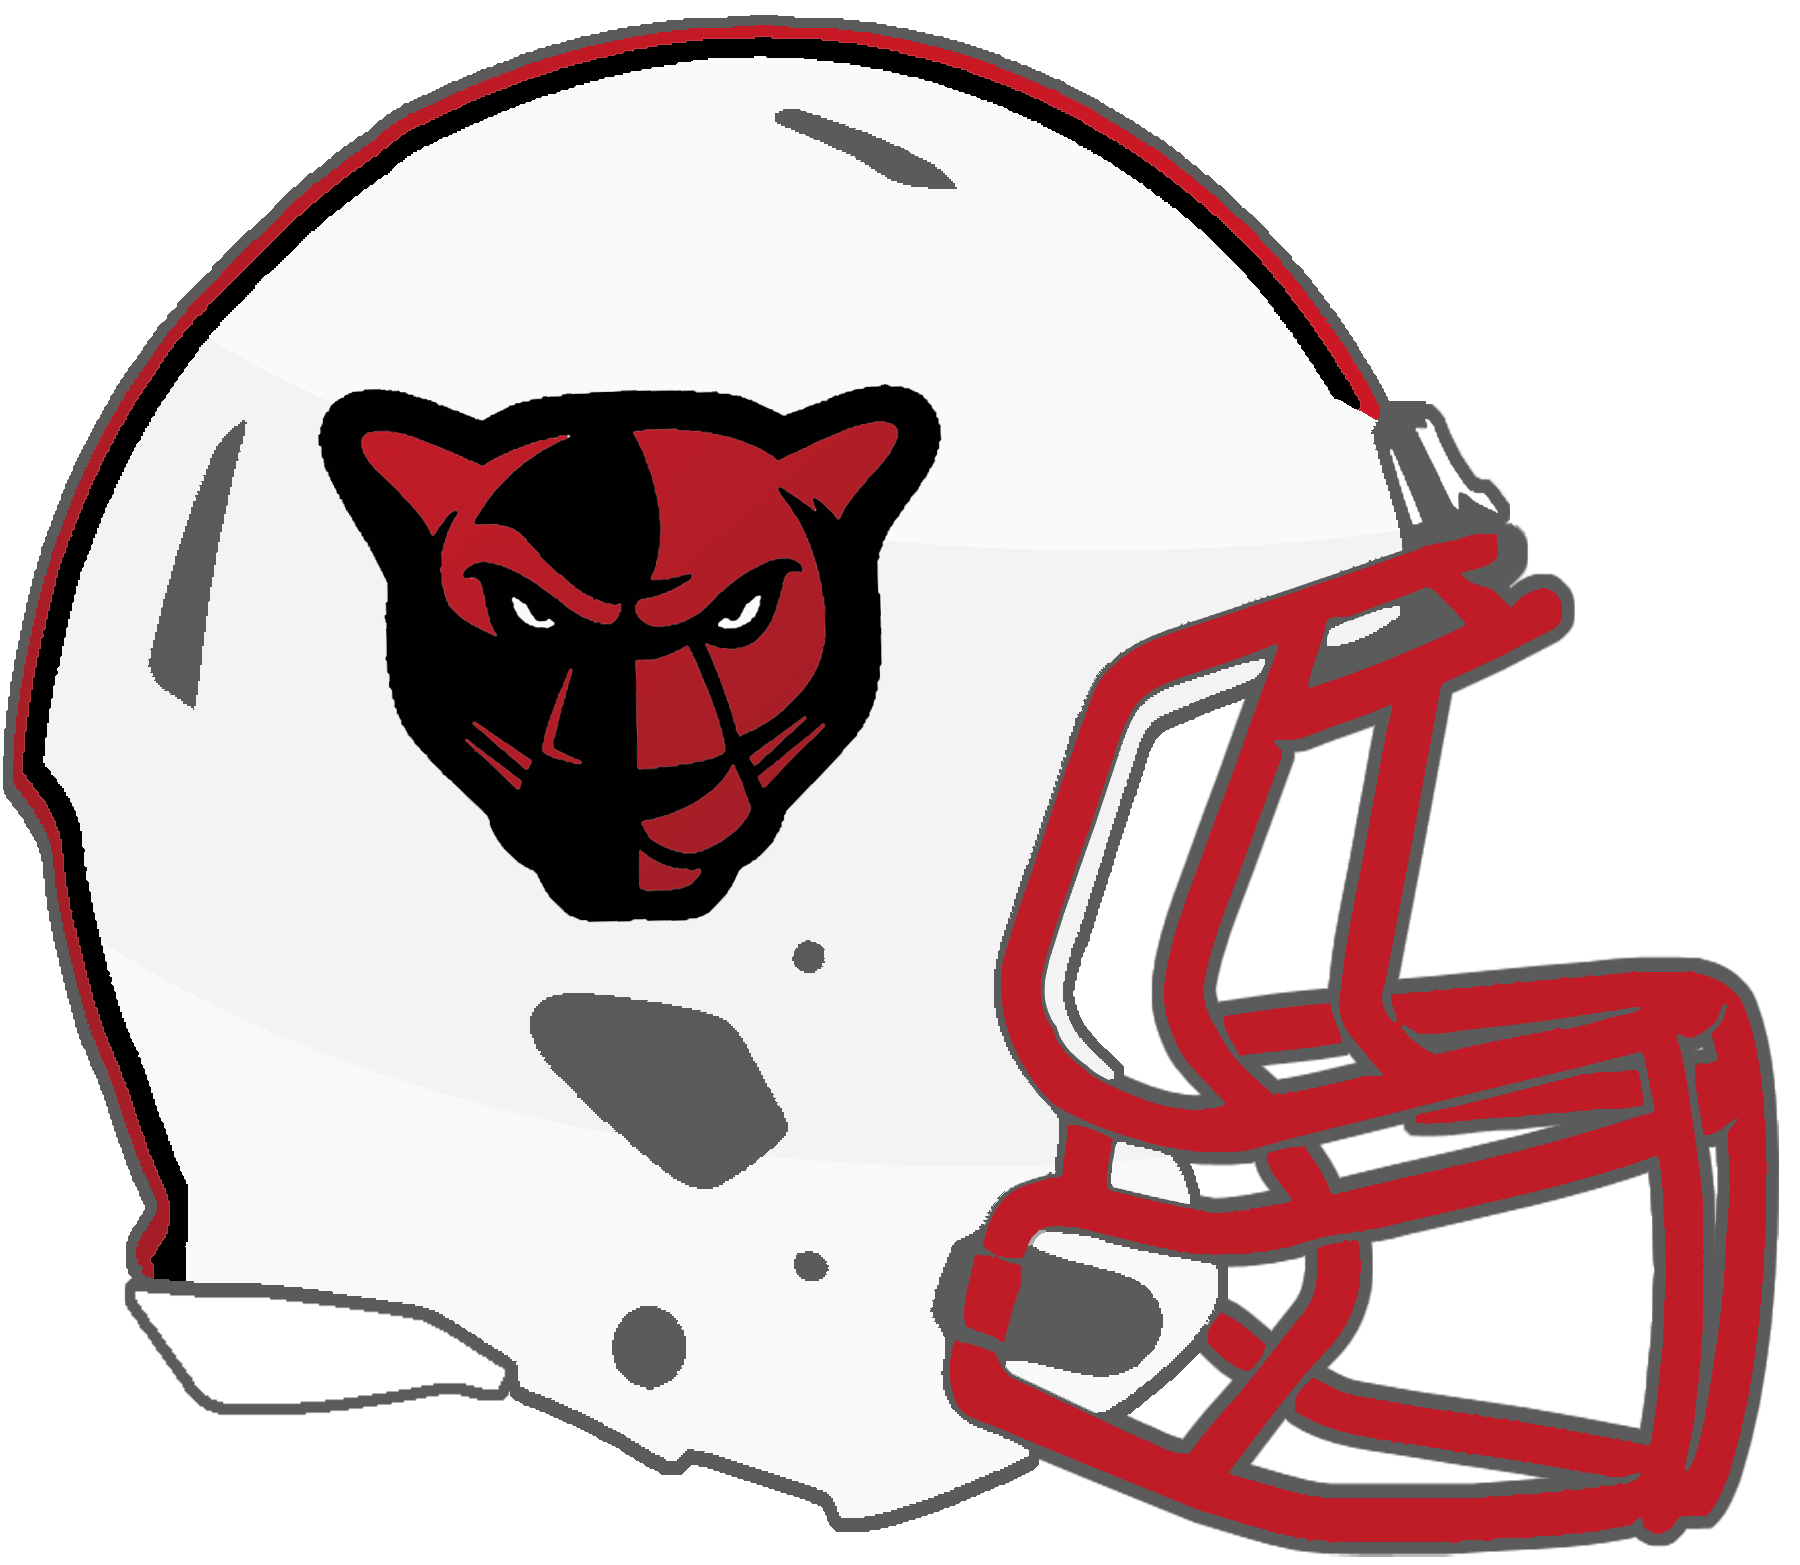 Panthers football helmet clipart banner royalty free download Mississippi High School Football Helmets: 6A banner royalty free download